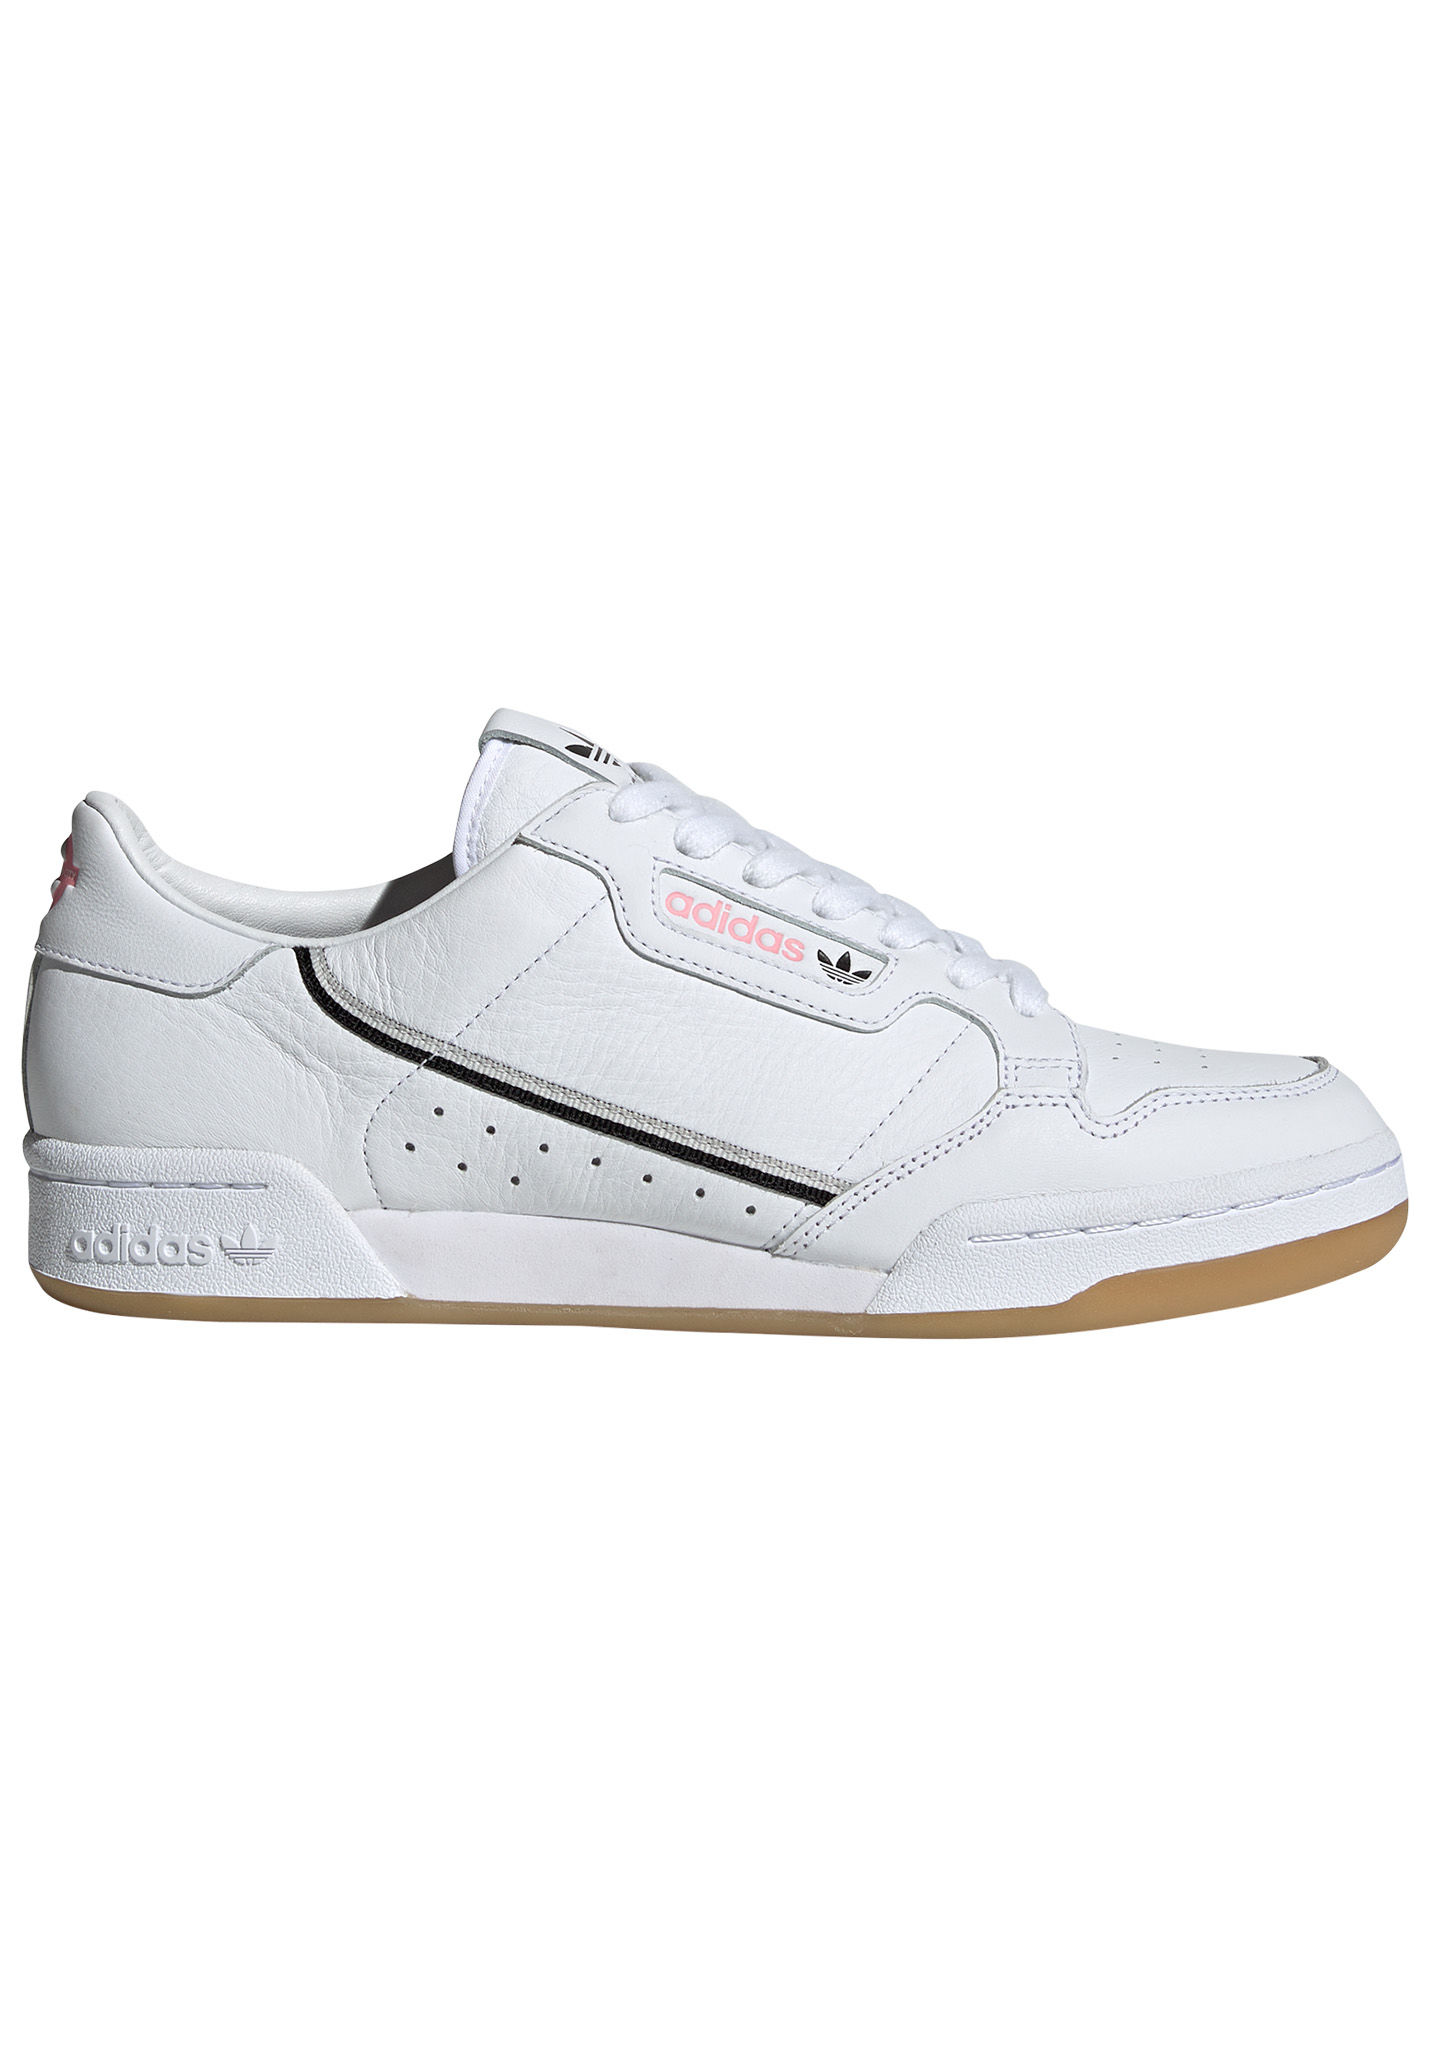 best loved 050eb 80287 ADIDAS ORIGINALS X TFL Continental 80 - Sneakers for Men - White - Planet  Sports